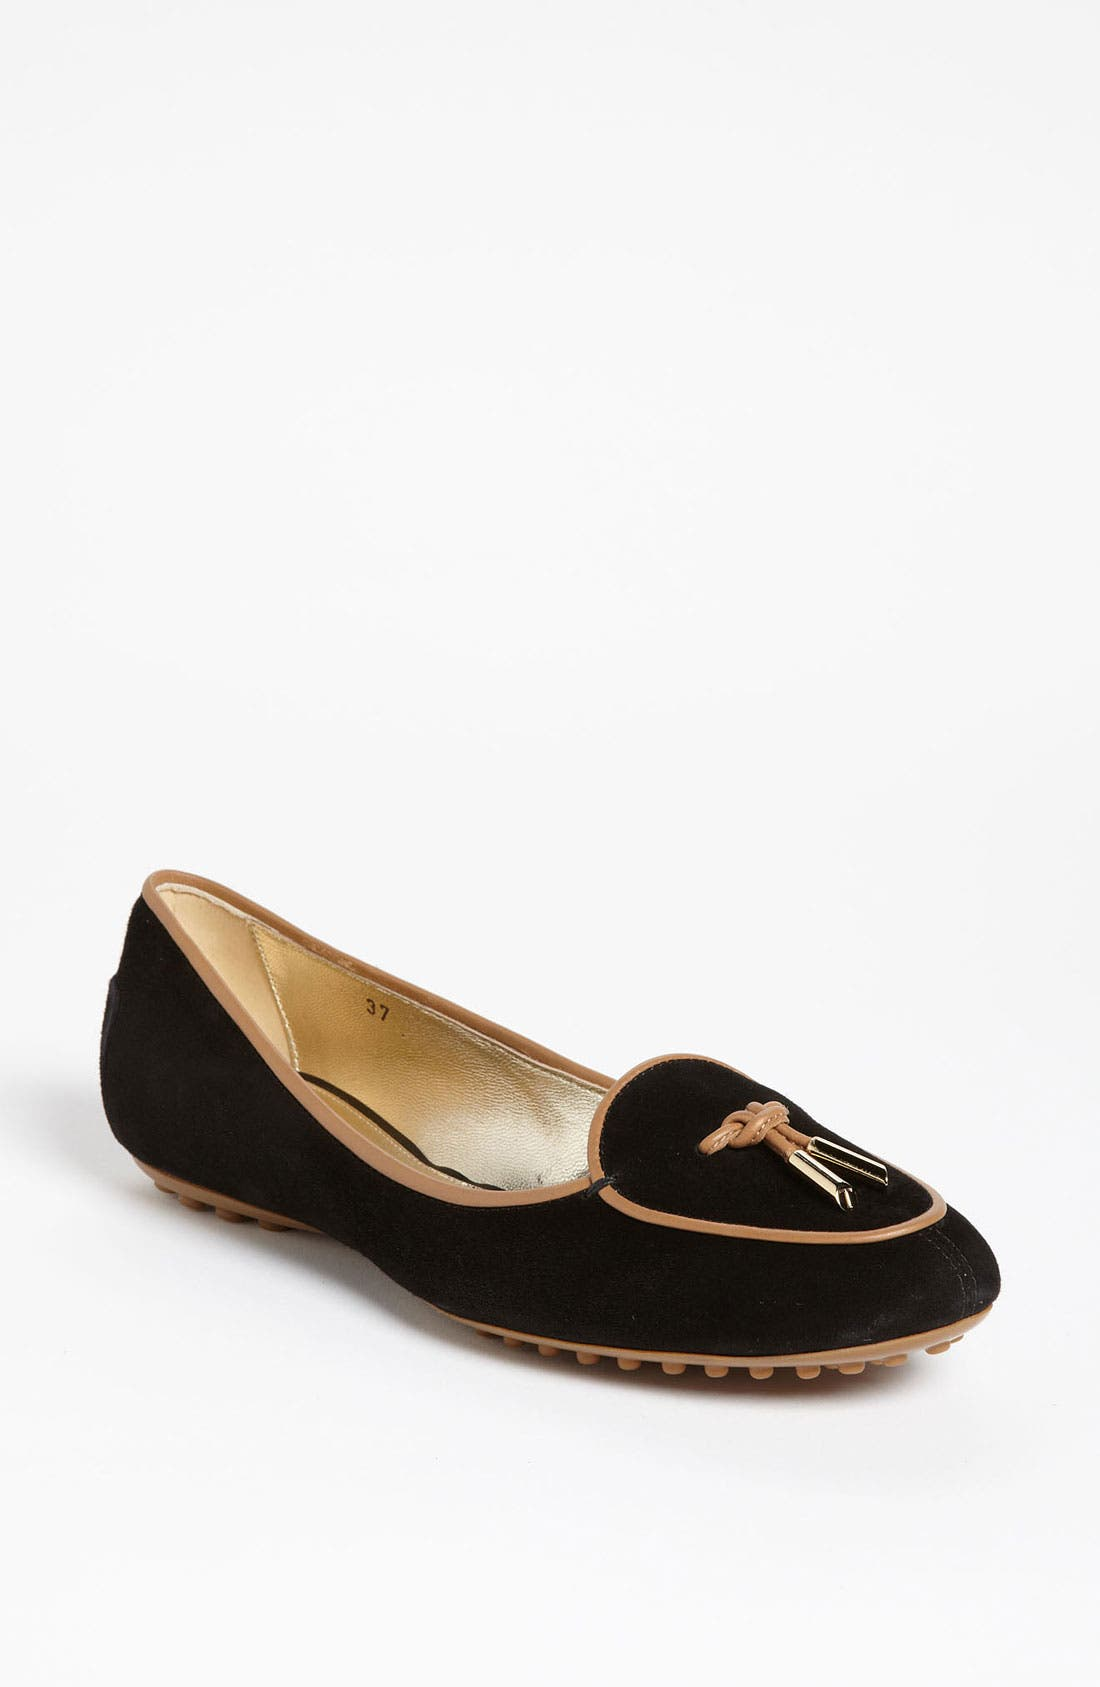 Main Image - Tod's 'Dee Pantofola Laccetto' Loafer